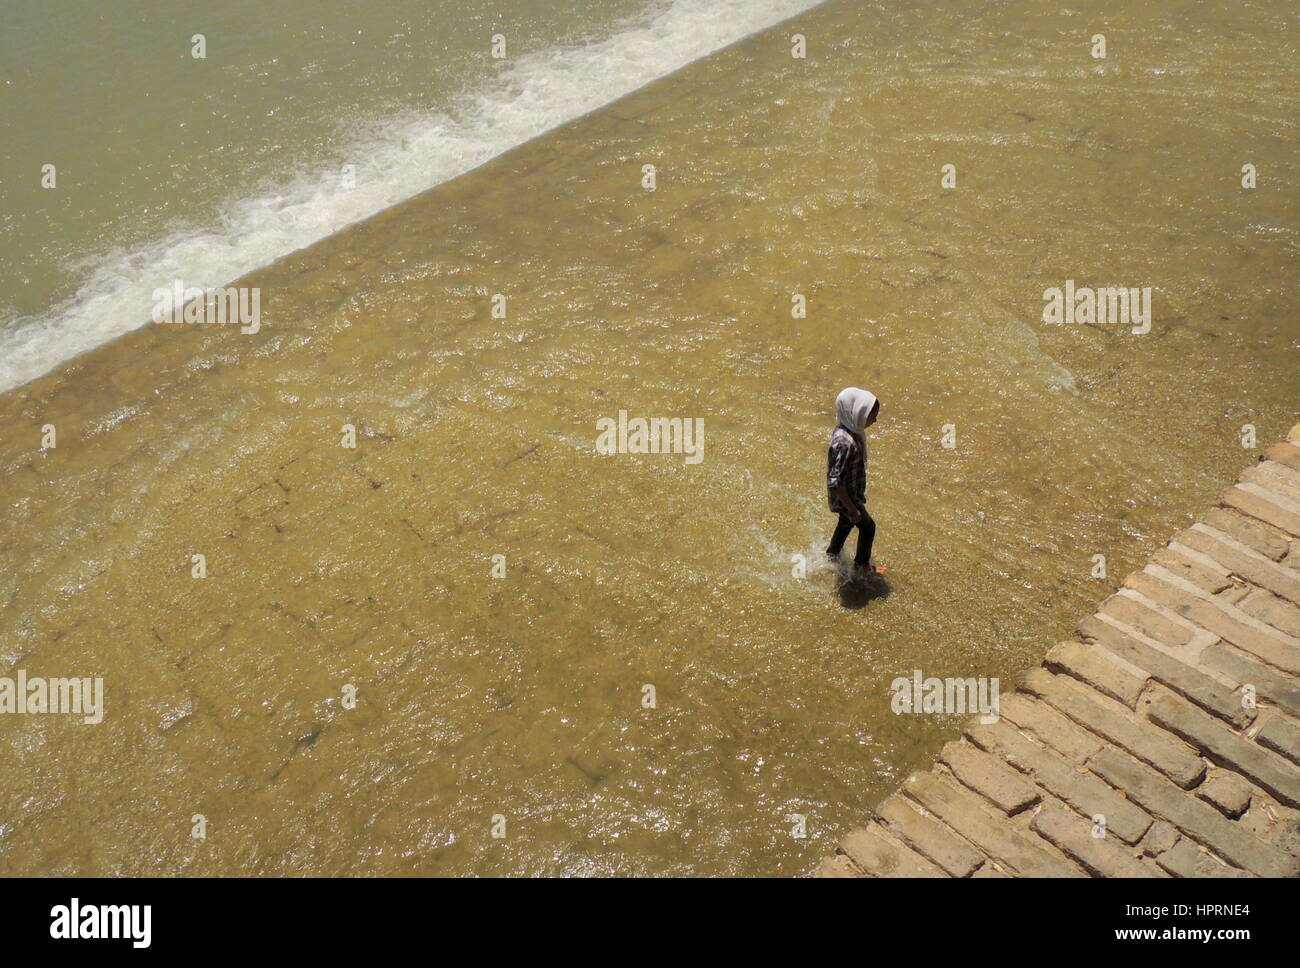 Muslim girl goes against the flow and walks alone challenging the waters of the Zayandeh river by the Si o seh pol - Stock Image